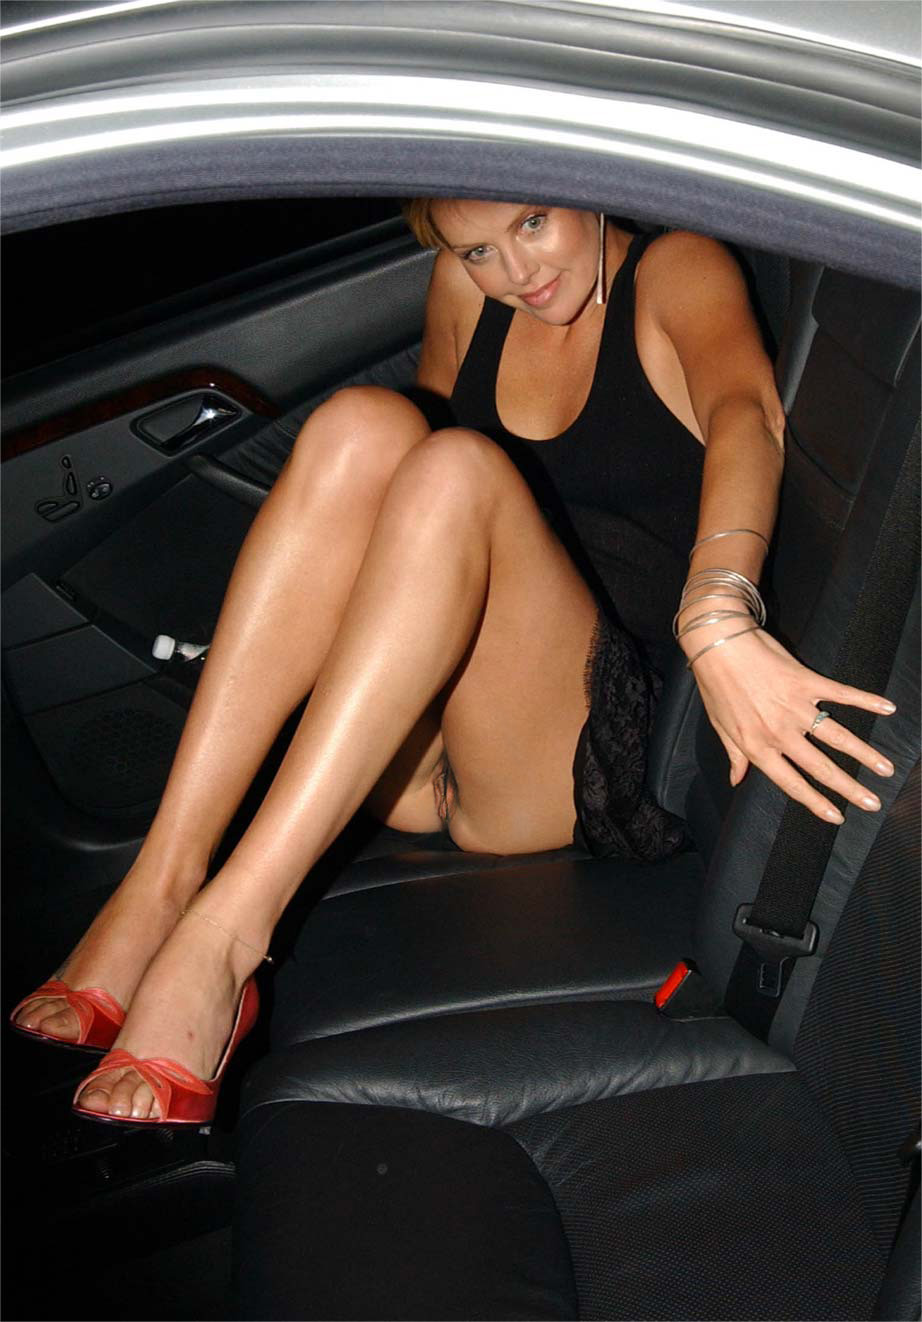 Collection Bare Pussy Up Skirt Pictures - Amateur Adult Gallery